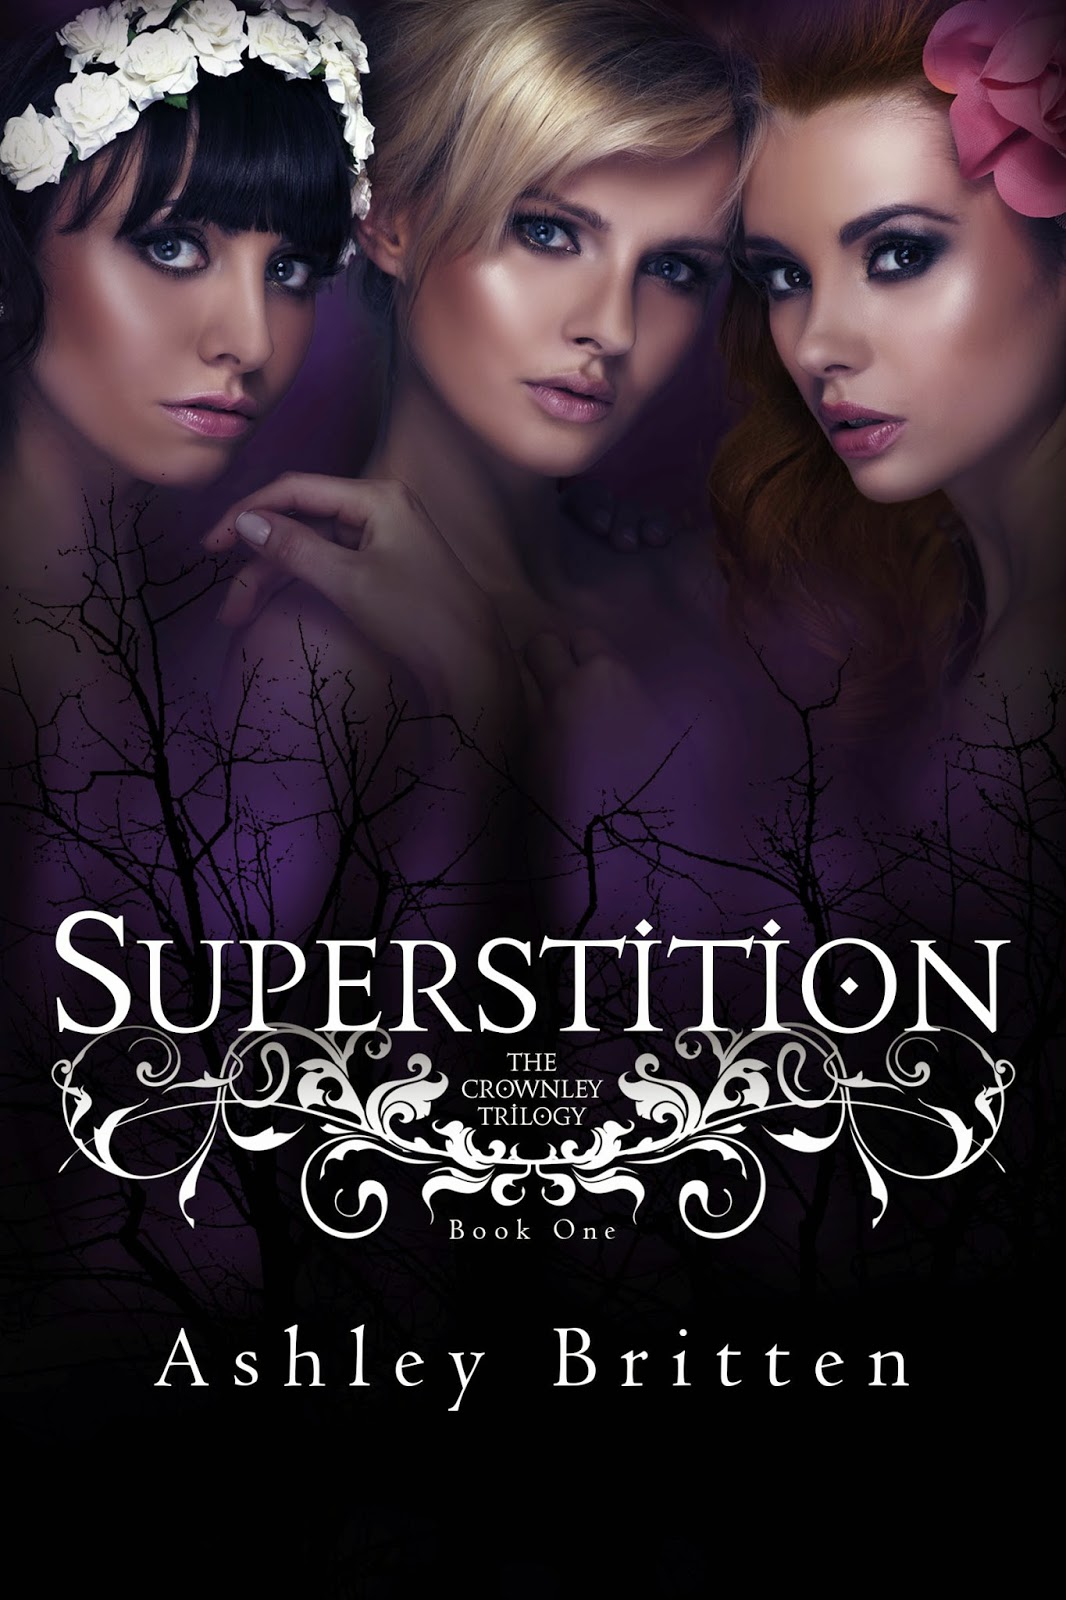 https://www.goodreads.com/book/show/21793634-superstition